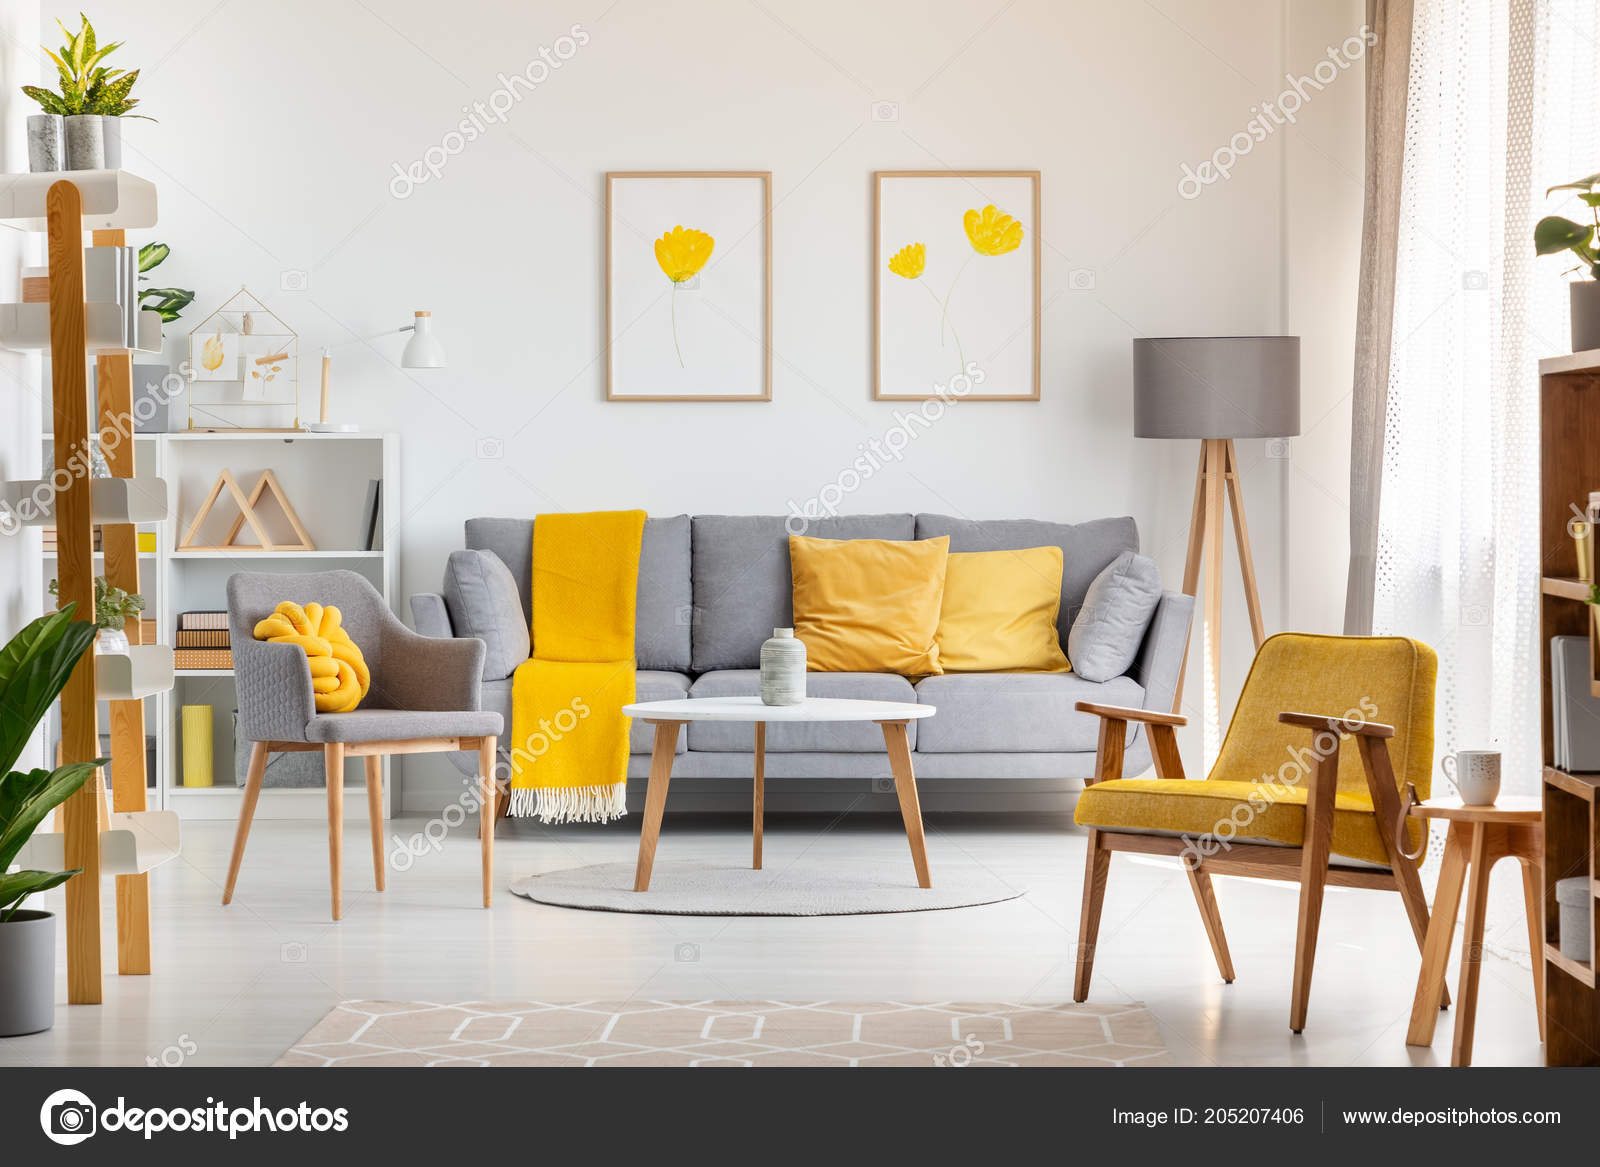 Yellow Living Room Chair Armchairs Table Grey Yellow Living Room Interior Posters Sofa Real